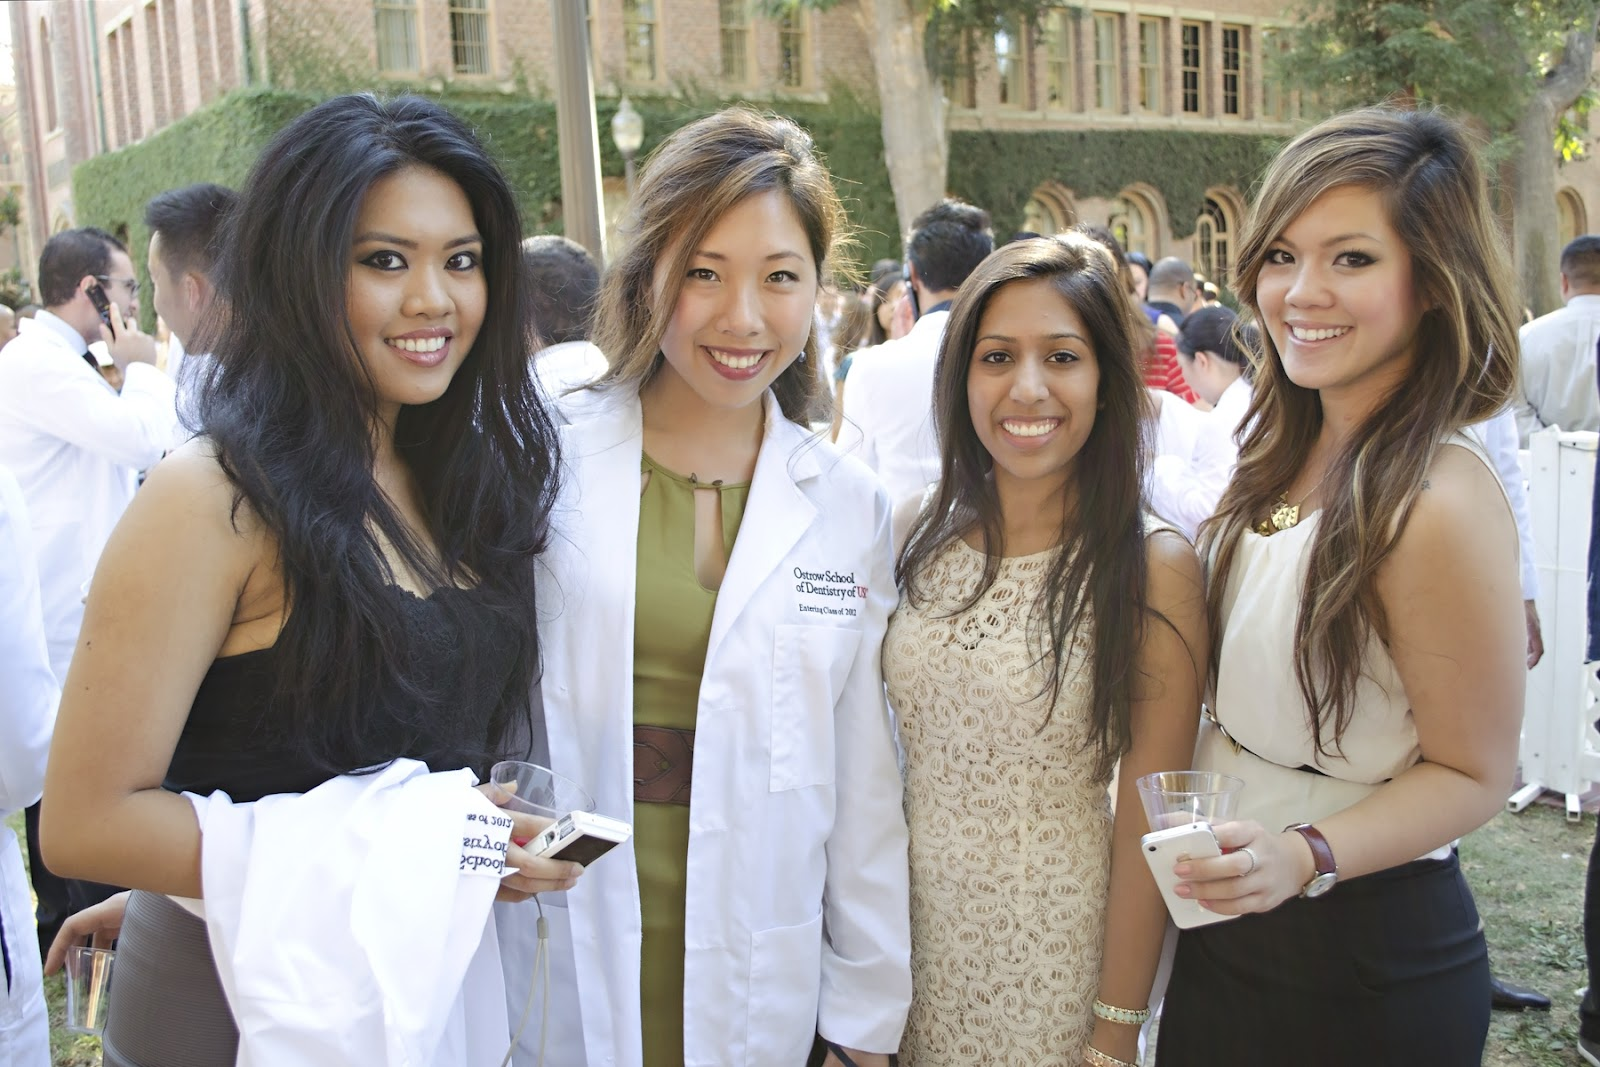 Day 01: Class of 2016 White Coat Ceremony | Mirror and Explorer ...